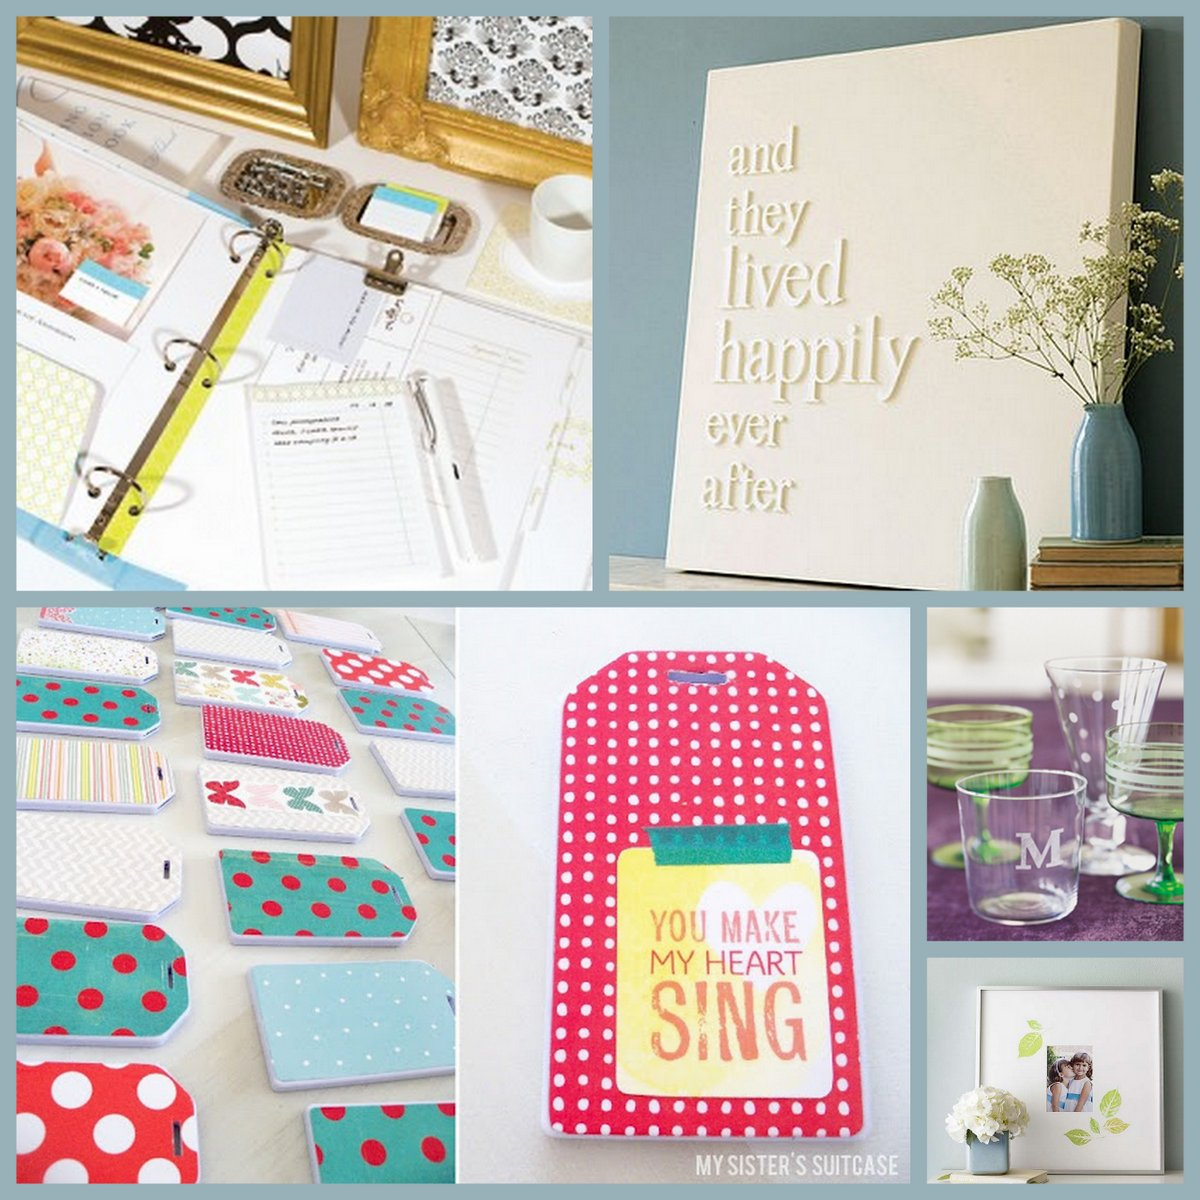 Wedding Gift Diy Ideas Suggestions : Diy Wedding Gifts Ideas Clockwise from upper left: diy